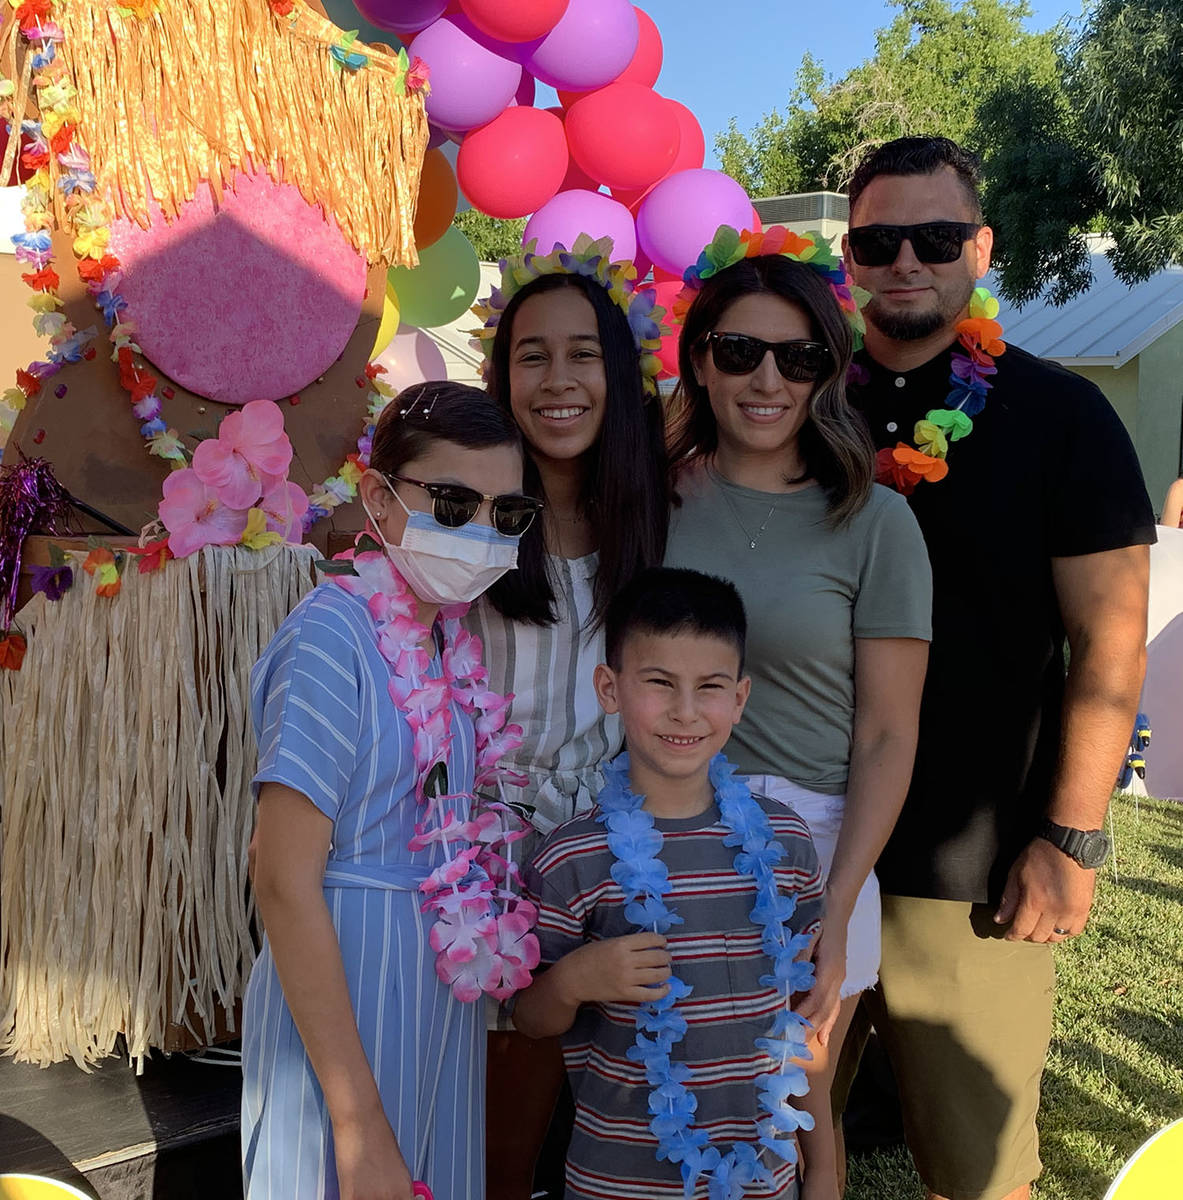 (Hali Bernstein Saylor/Boulder City Review) The Giamanco family, from left, Emilee, Natalee, Pr ...